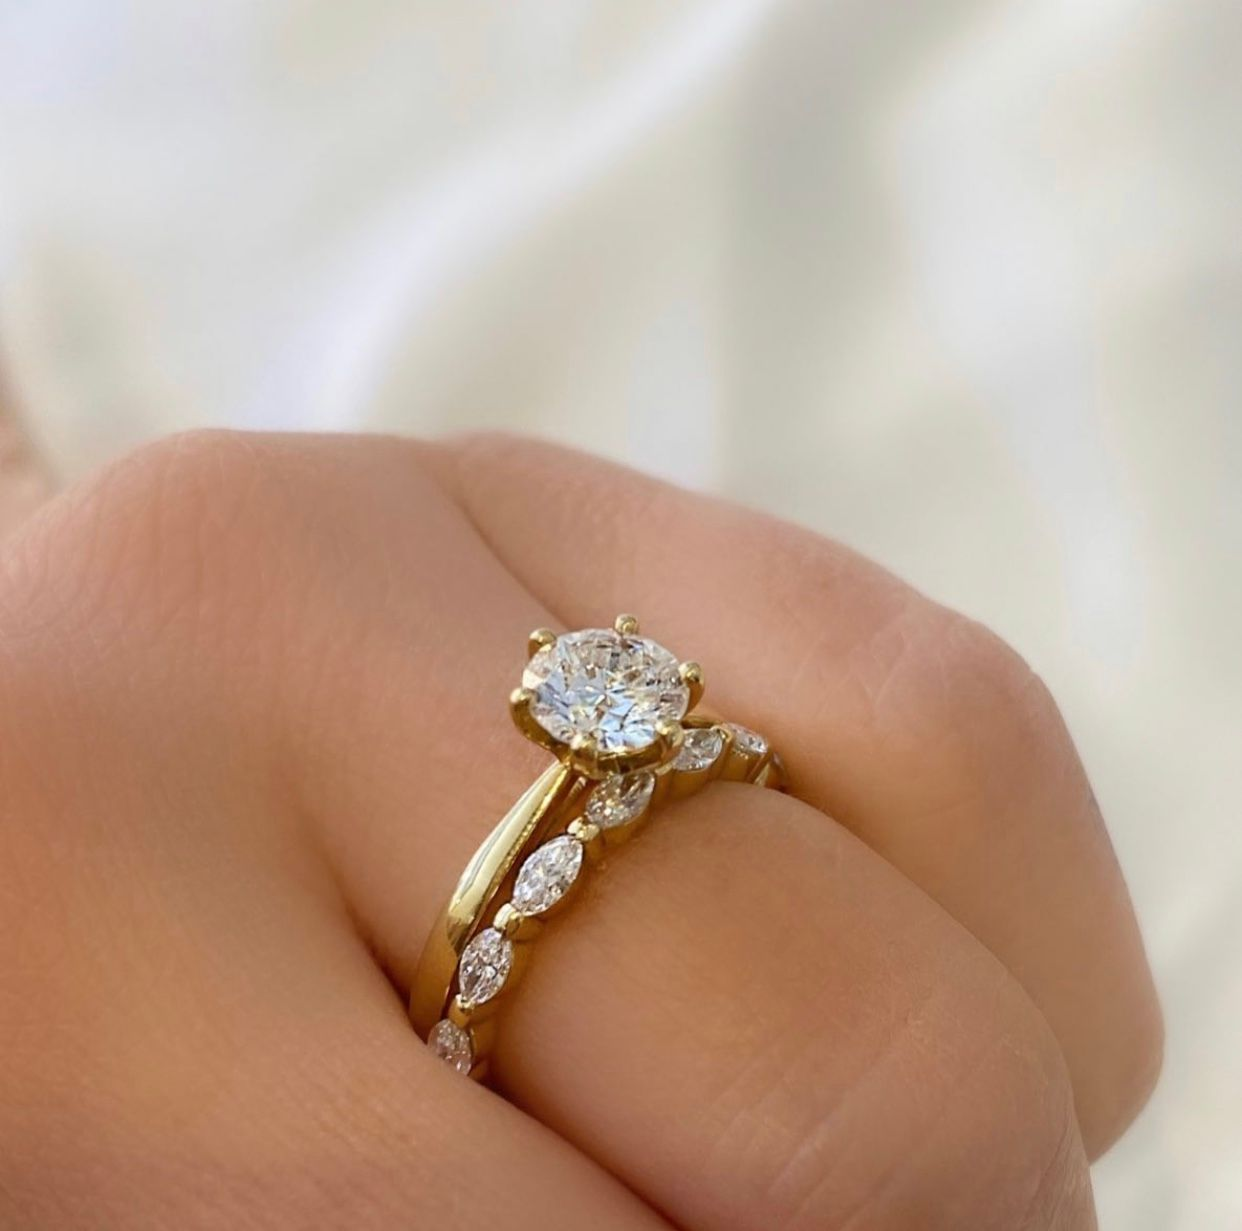 Grace 1,00ct + Happiness marquise 7x0,07ct = 0,49ct